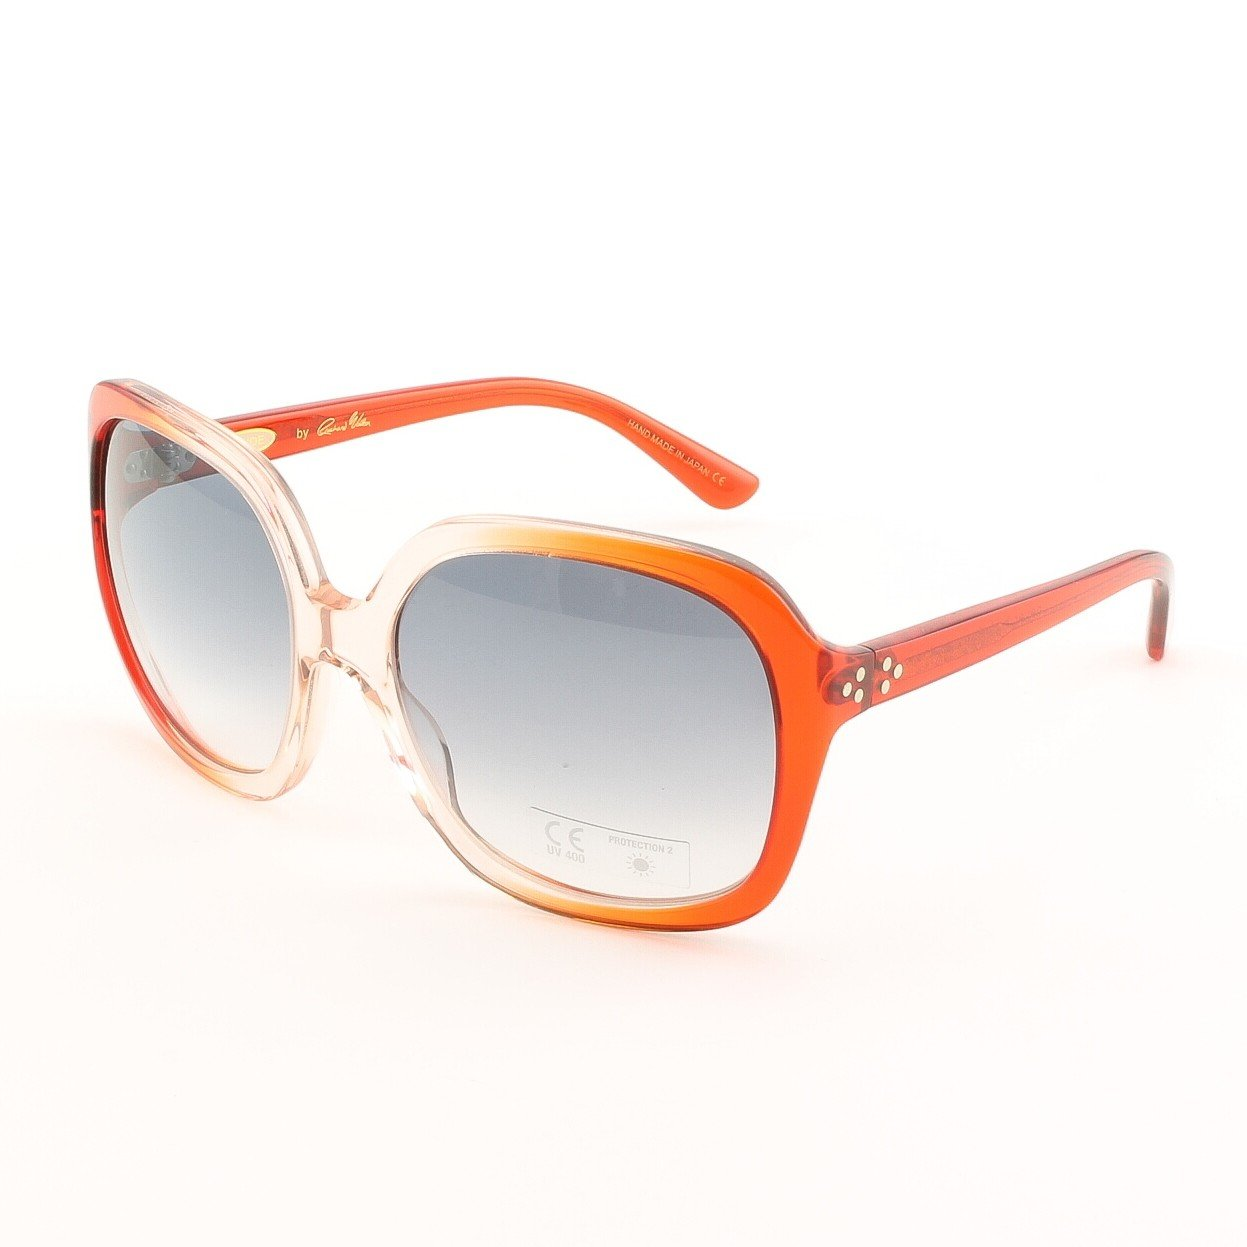 Blinde Never Had It So Good Women's Sunglasses Col. Orange Crystal with Grey Lenses